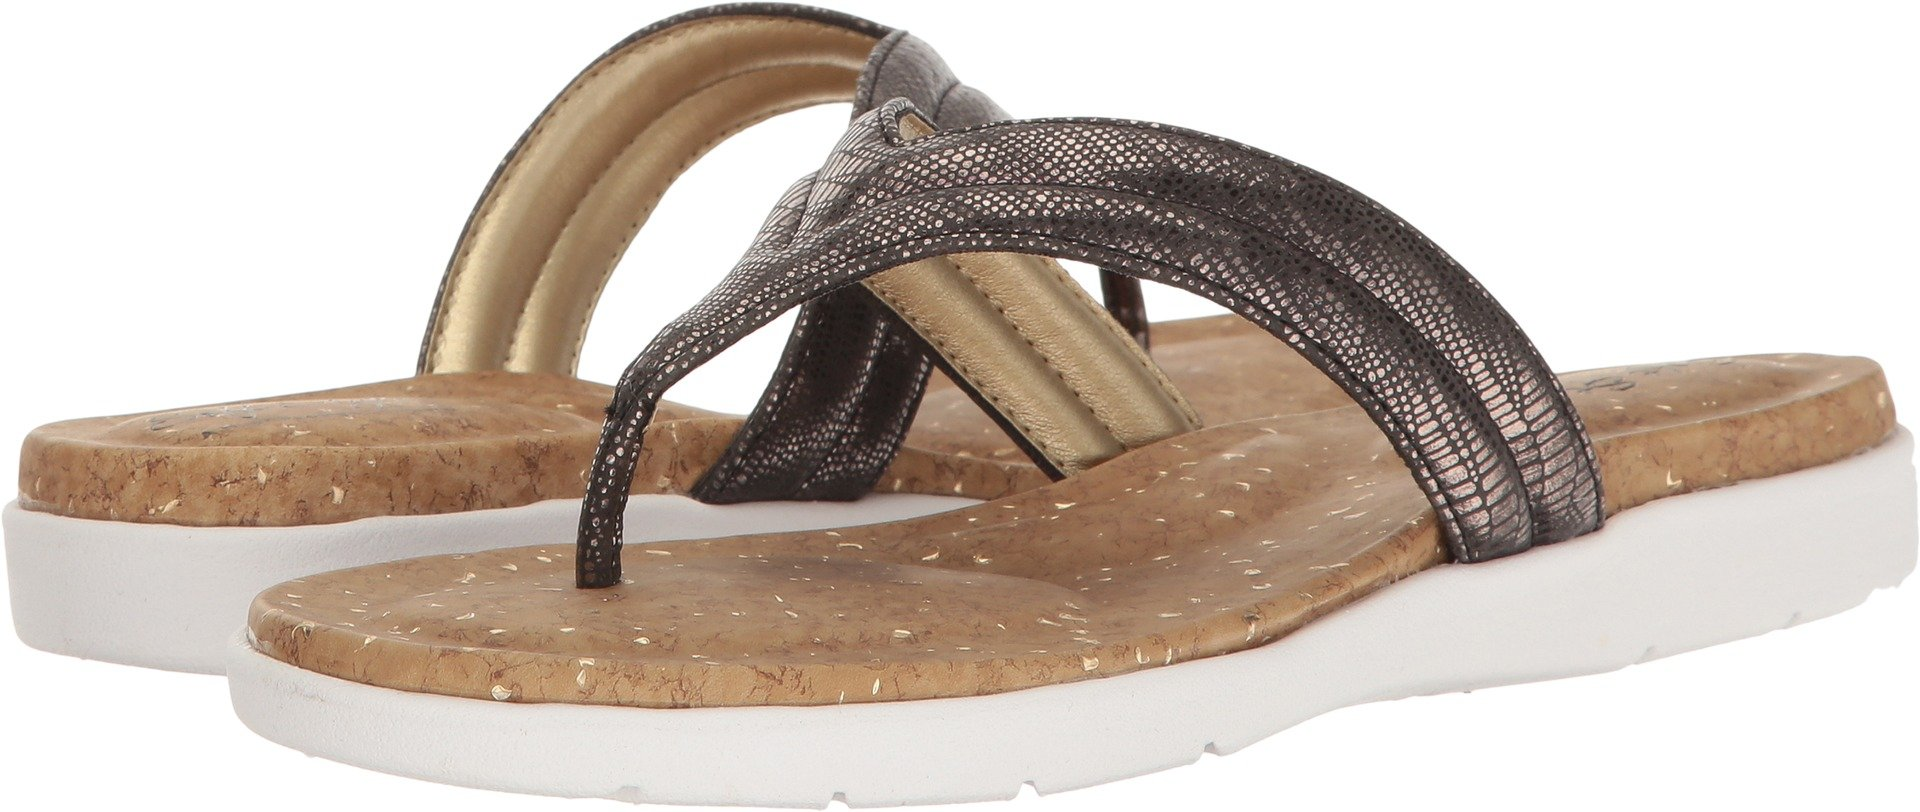 Soft Style by Hush Puppies Women's Lizzy Flat Sandal, Black Haku, 6 M US